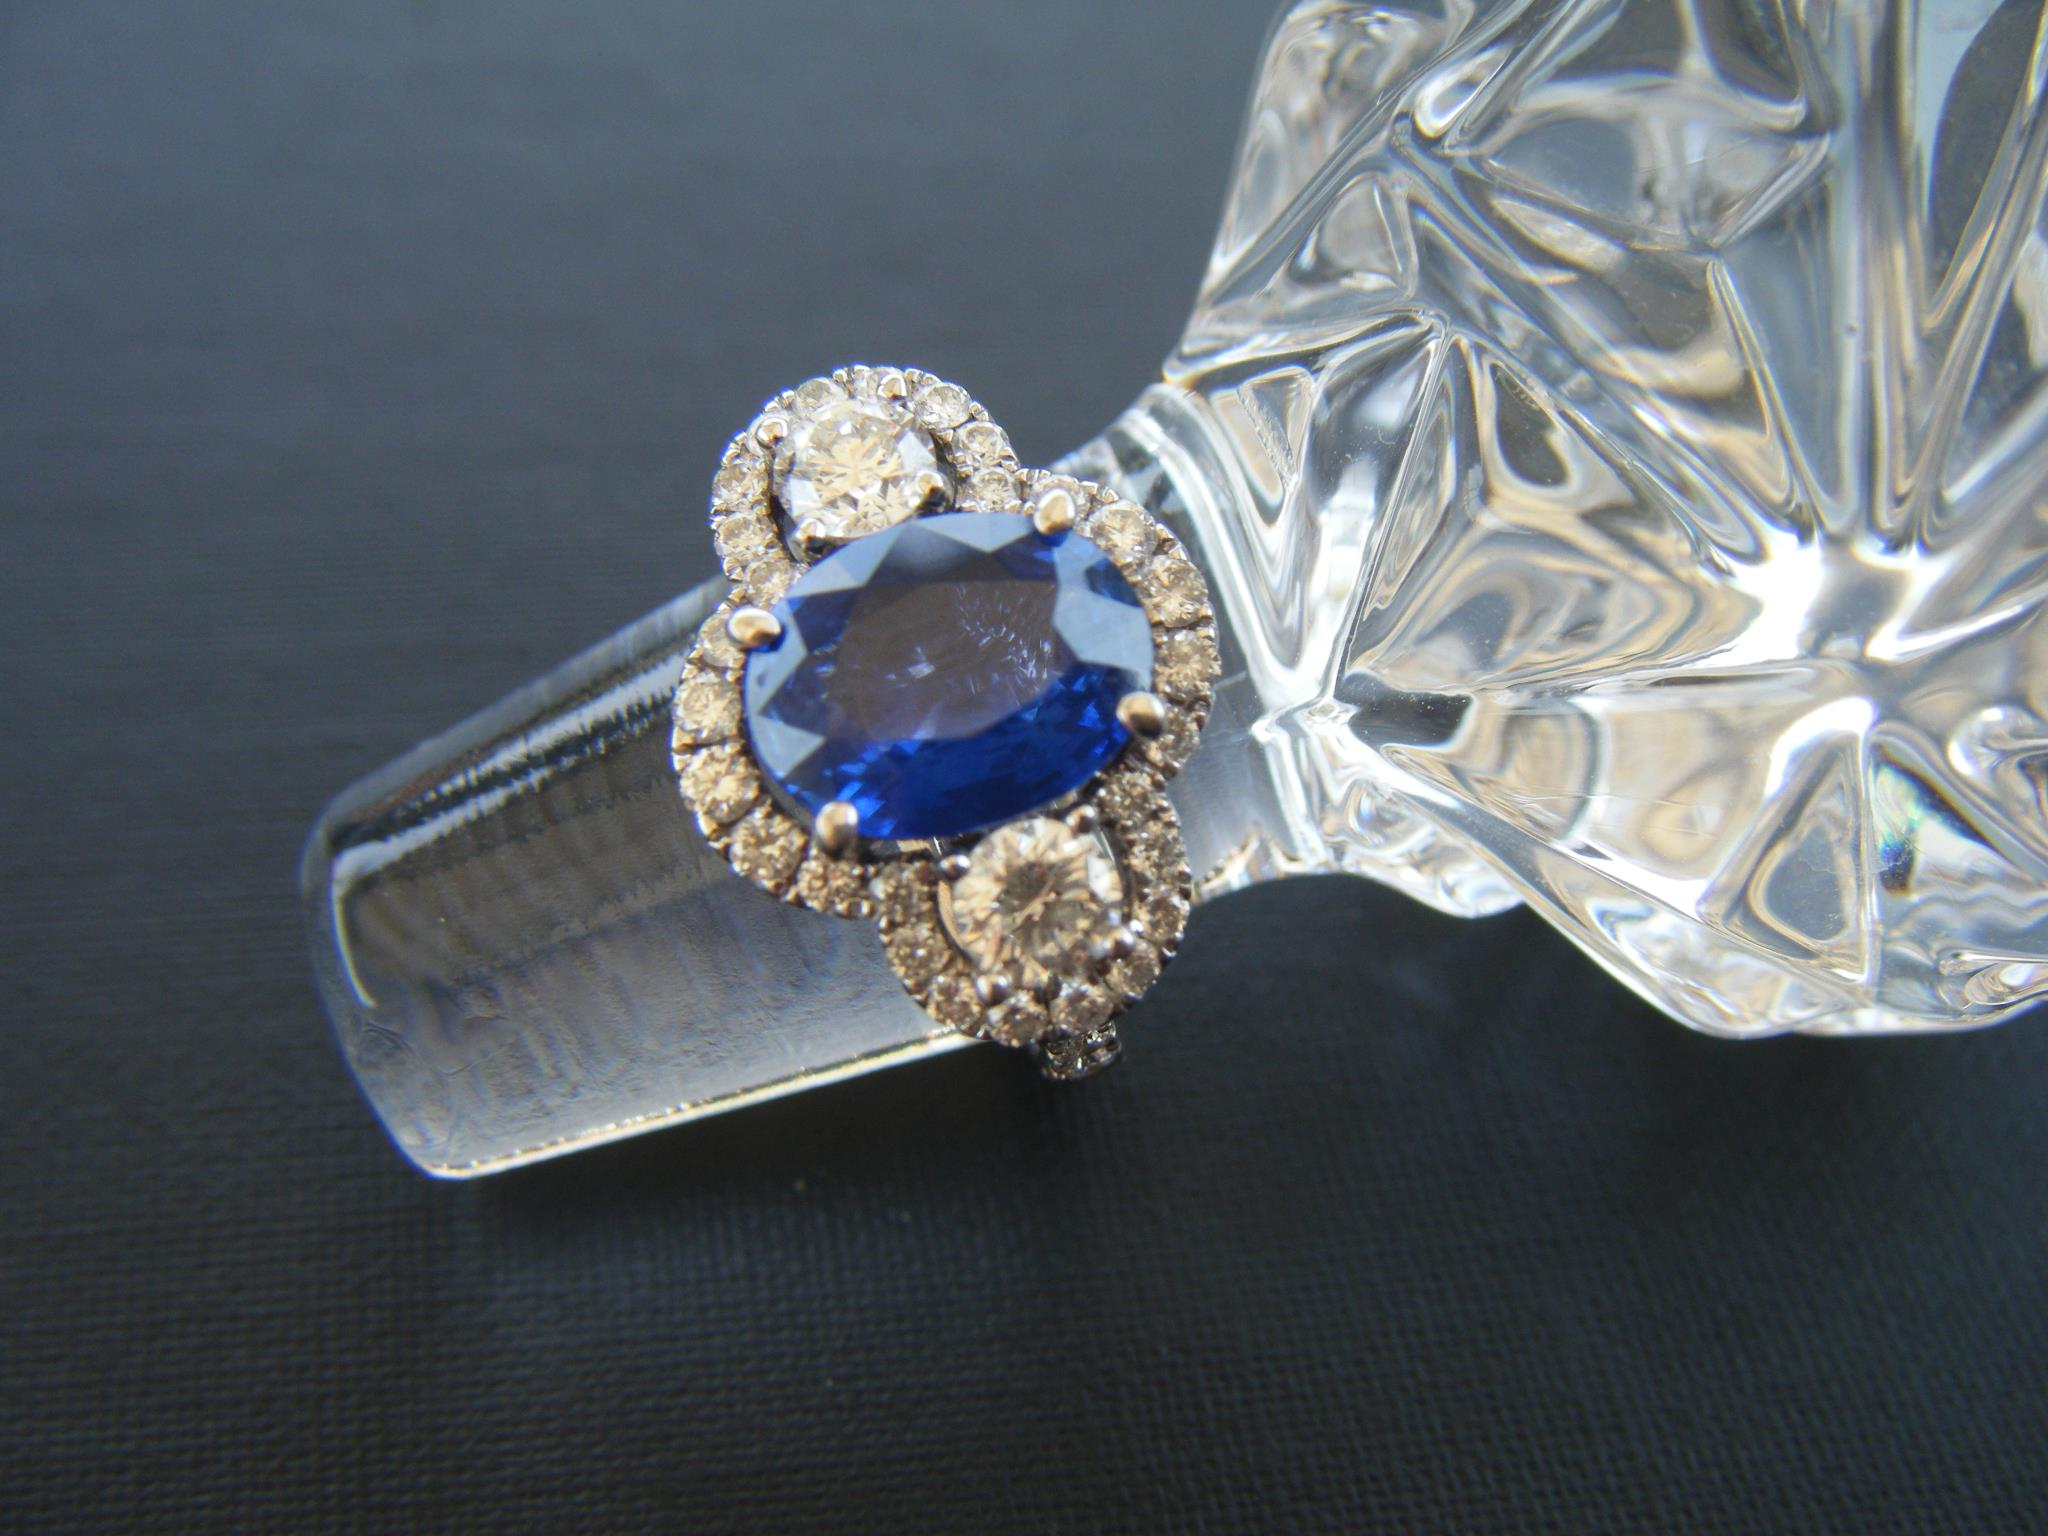 SOLD - Beautiful diamond and sapphire ring with a 2.03 carat sapphire in the center and a 0.44 carat diamond on each side set in 18K white gold.